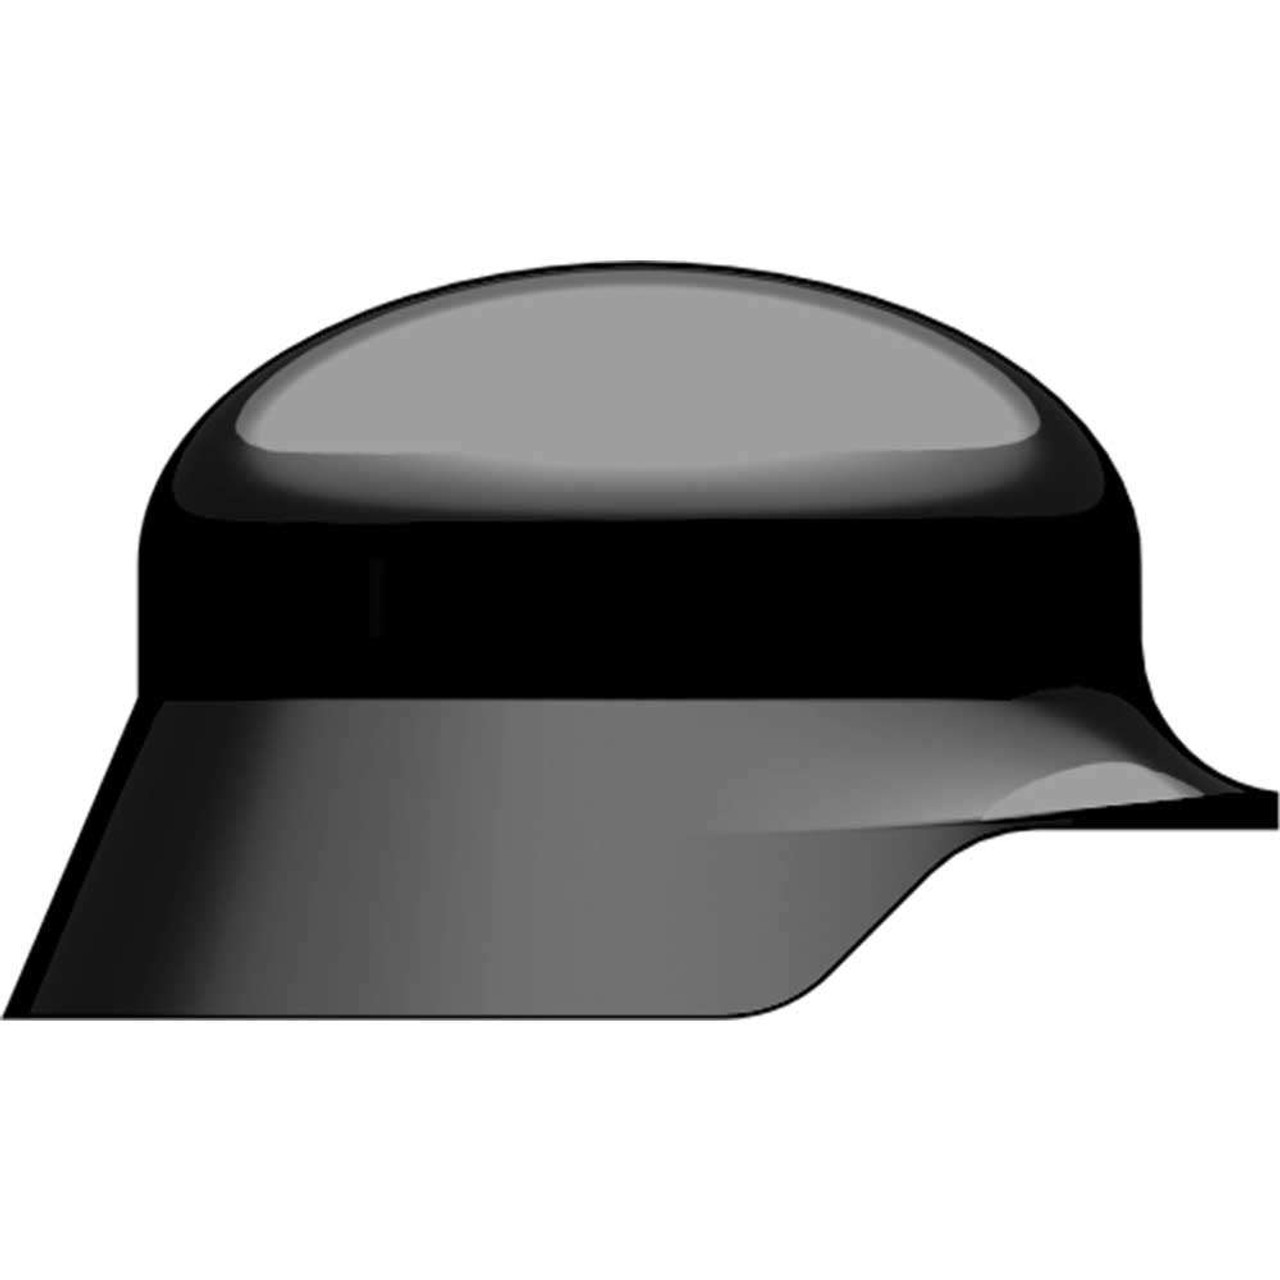 Strahlhelm Brickarms Stahlhelm 2 5 Inch Black